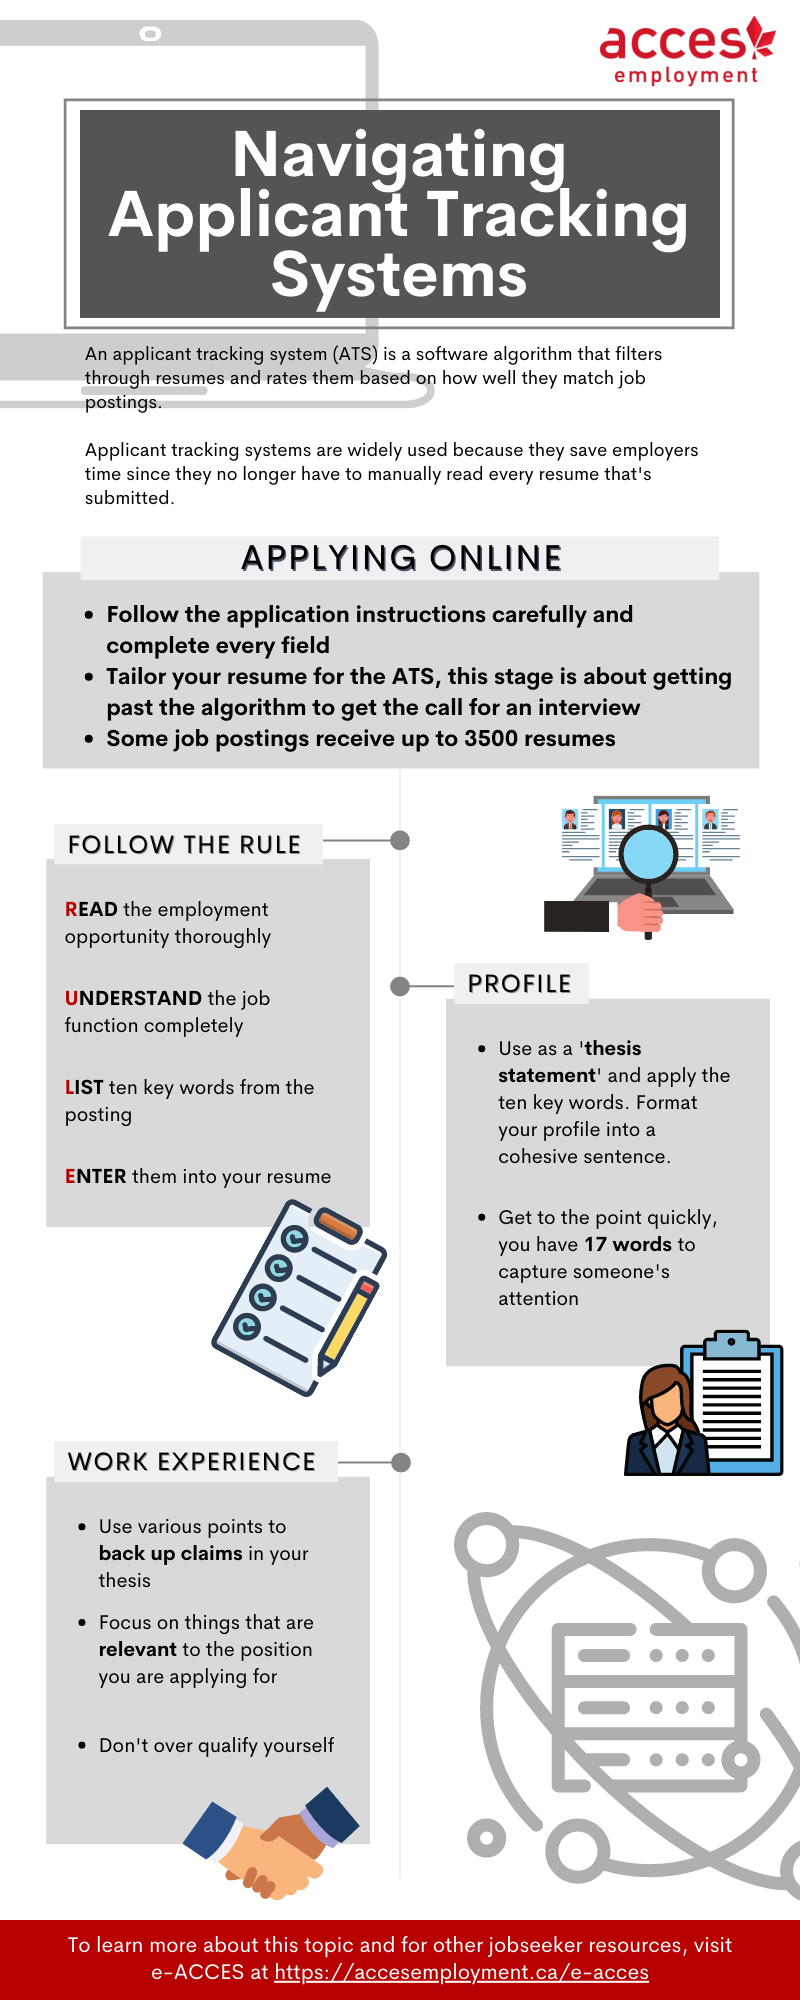 navigating applicant tracking systems infographic